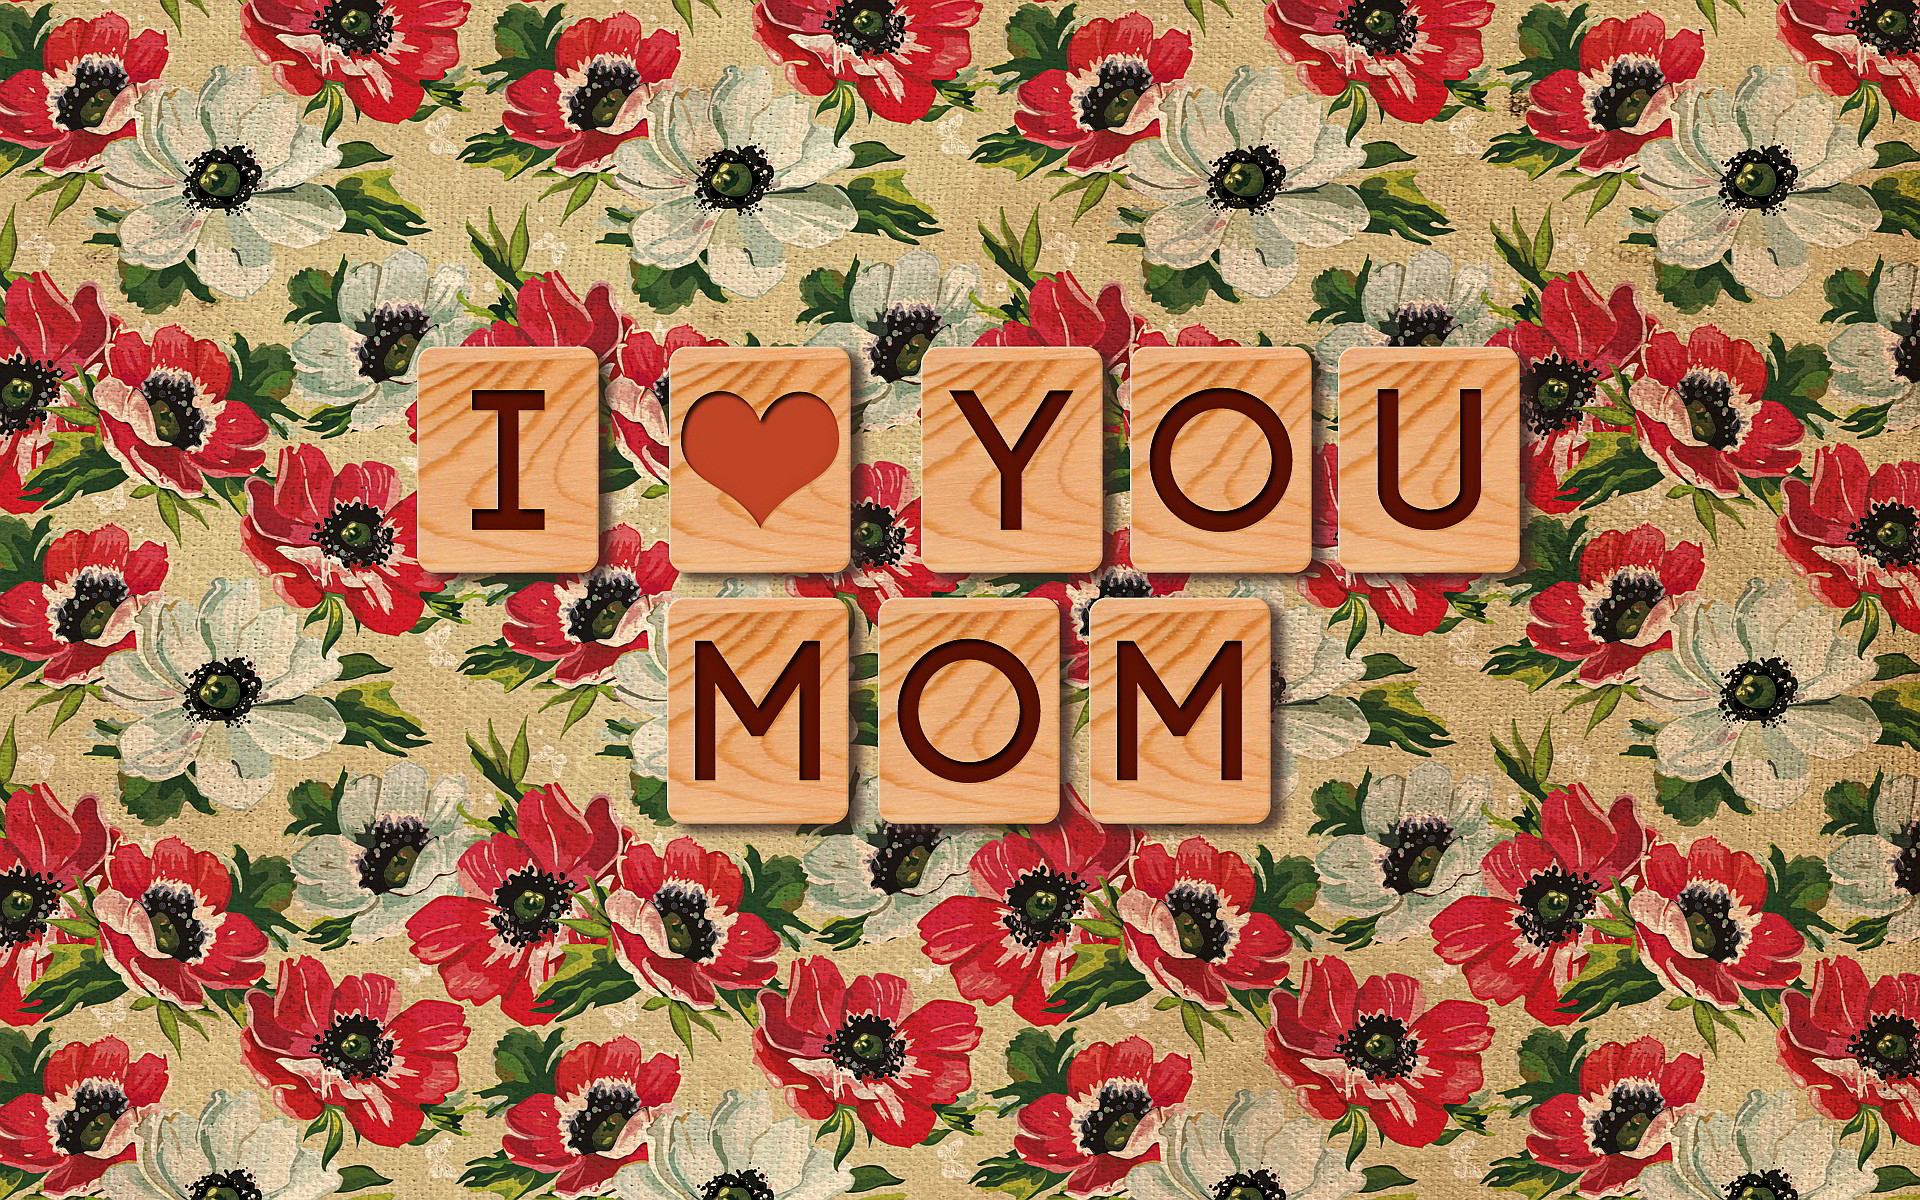 I Love You Mom Wallpapers Images Photos Hd Wallpapers Tumblr Pinterest  Istagram Whatsapp Imo Facebook Twitter – Heart Touching Fashion Summary  Amazon Store